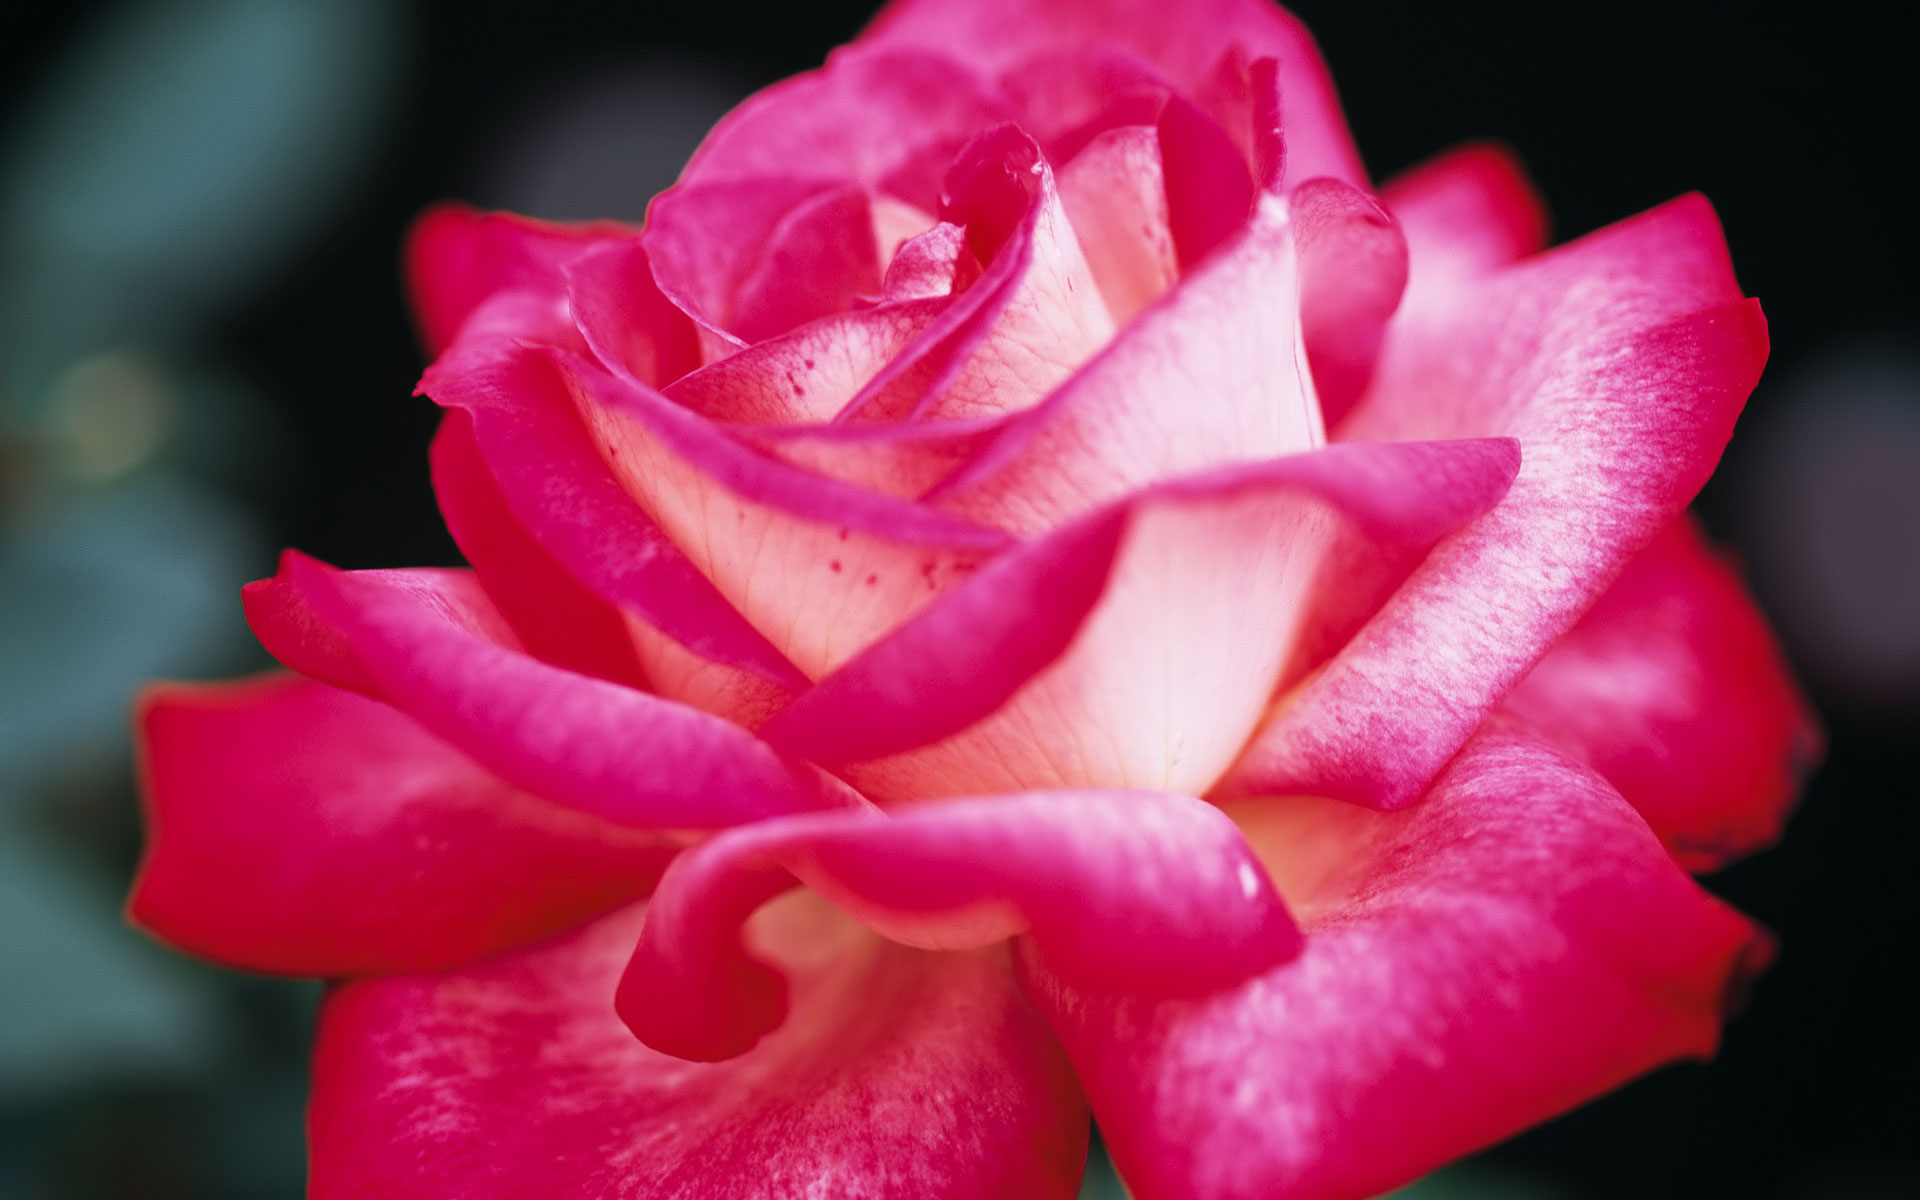 Roses Images Pretty Pink Roses Hd Wallpaper And Background Photos